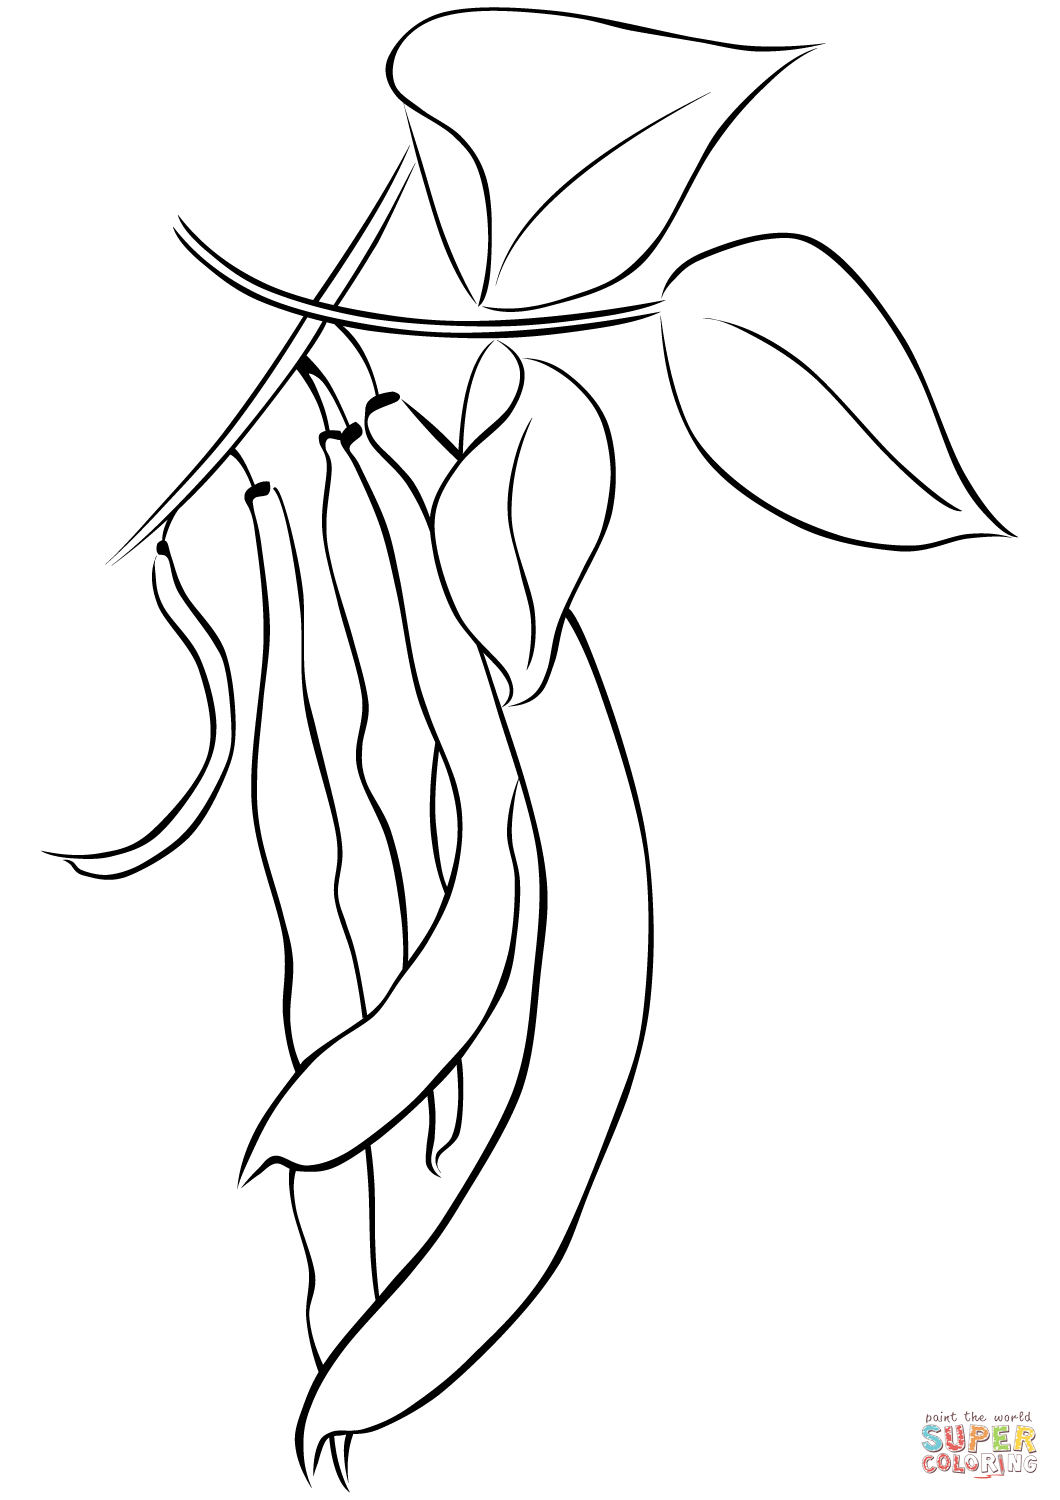 jpg royalty free download Bean drawing coloring page. Beans free printable pages